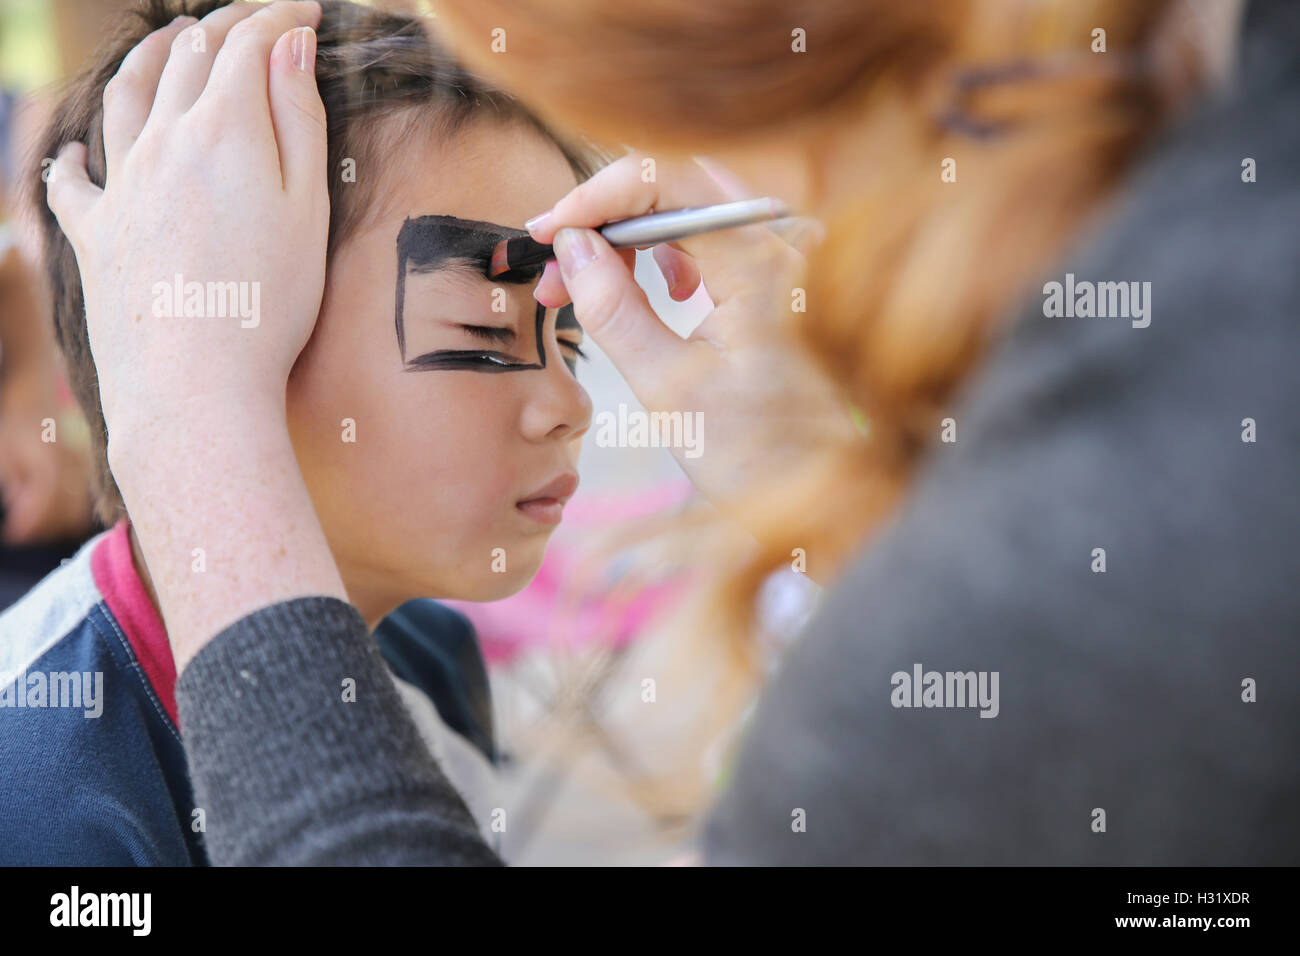 Young boy getting face painted - Stock Image